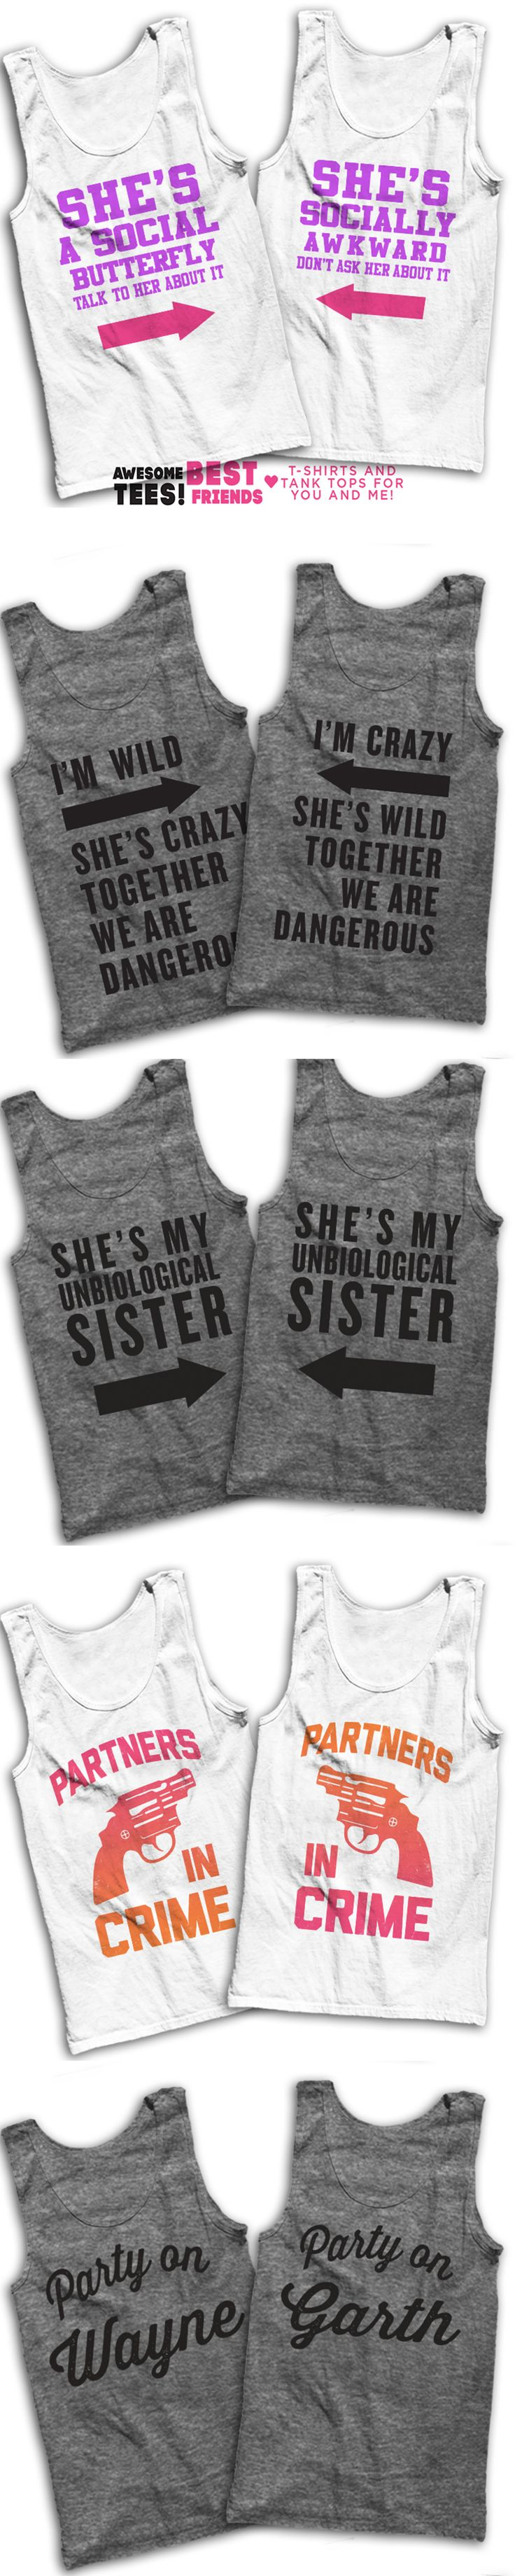 5 Awesome Matching T Shirts For You And Your Best Friend! While you're in check out our sarcastic lazy shirts for that cheat day, or grab a matching shirt for you and your bff!